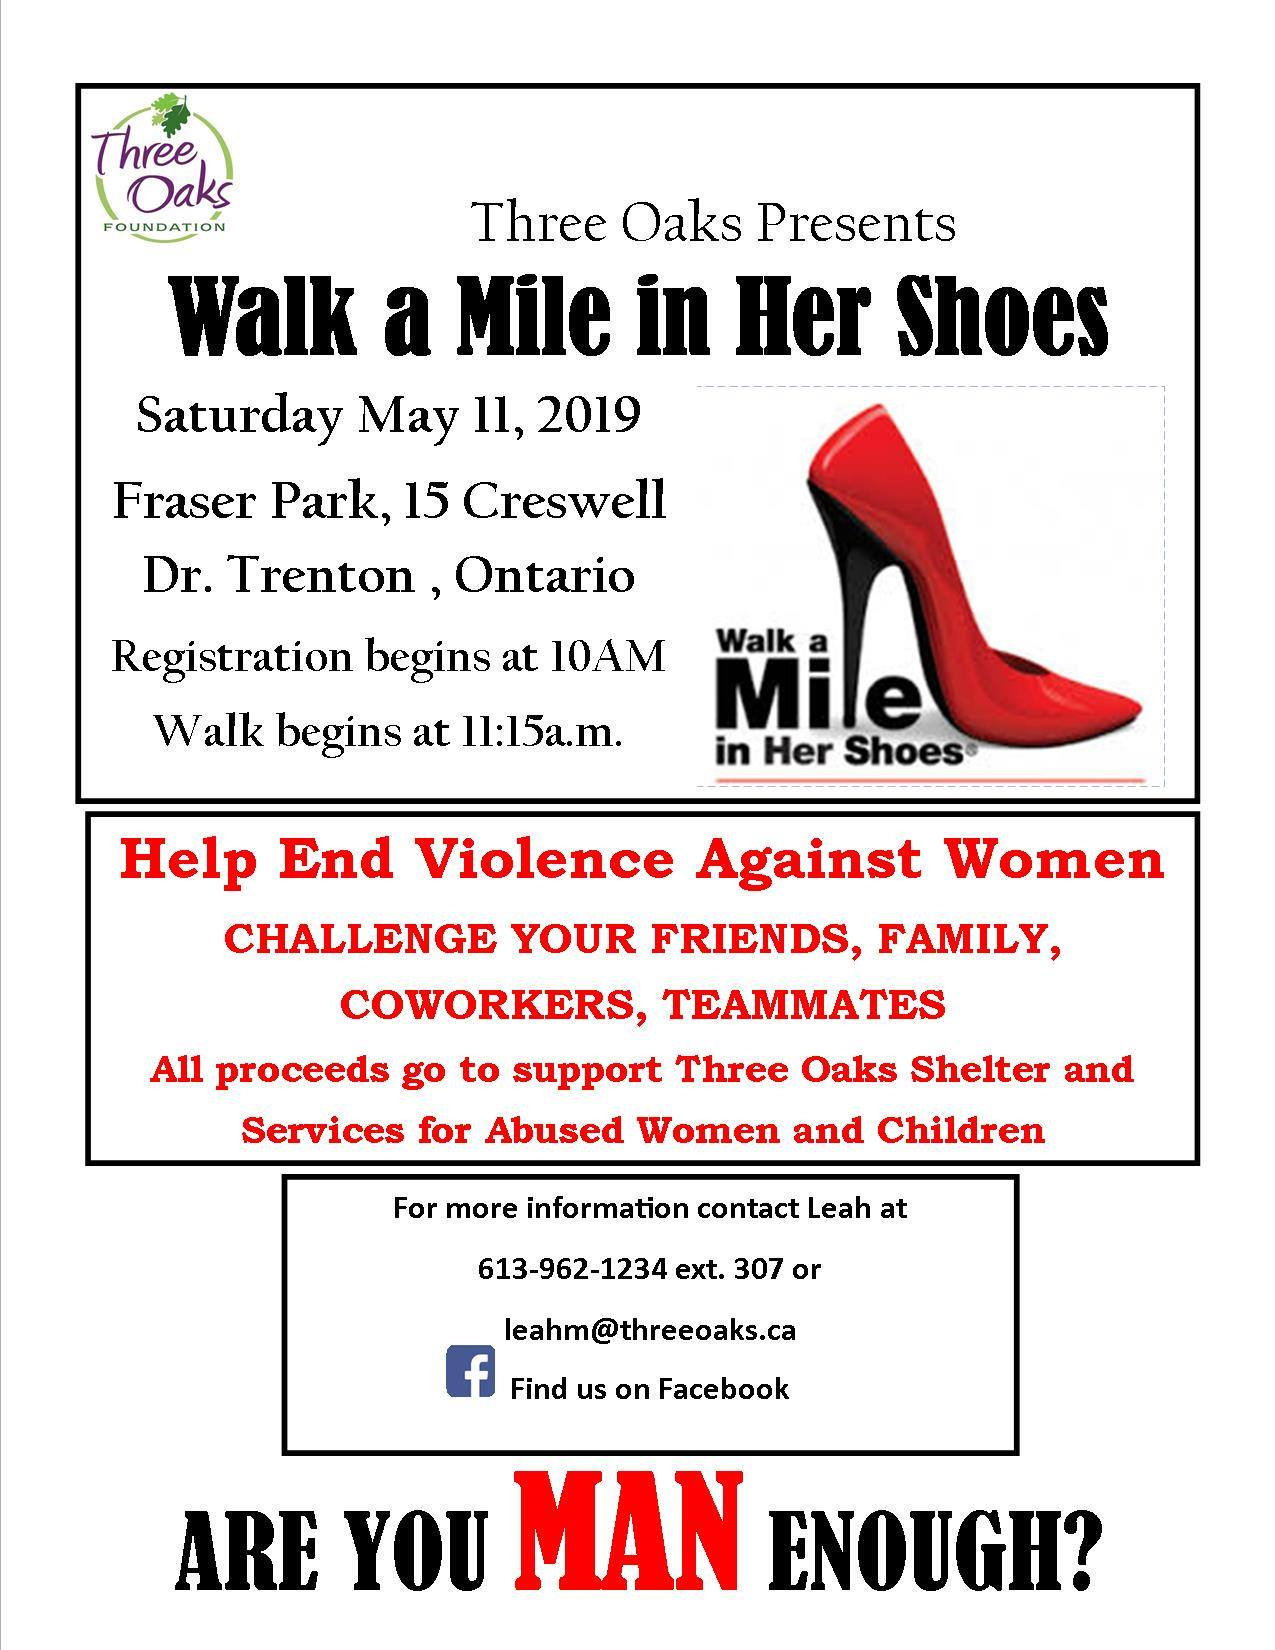 walk a mile in her shoes fundraiser